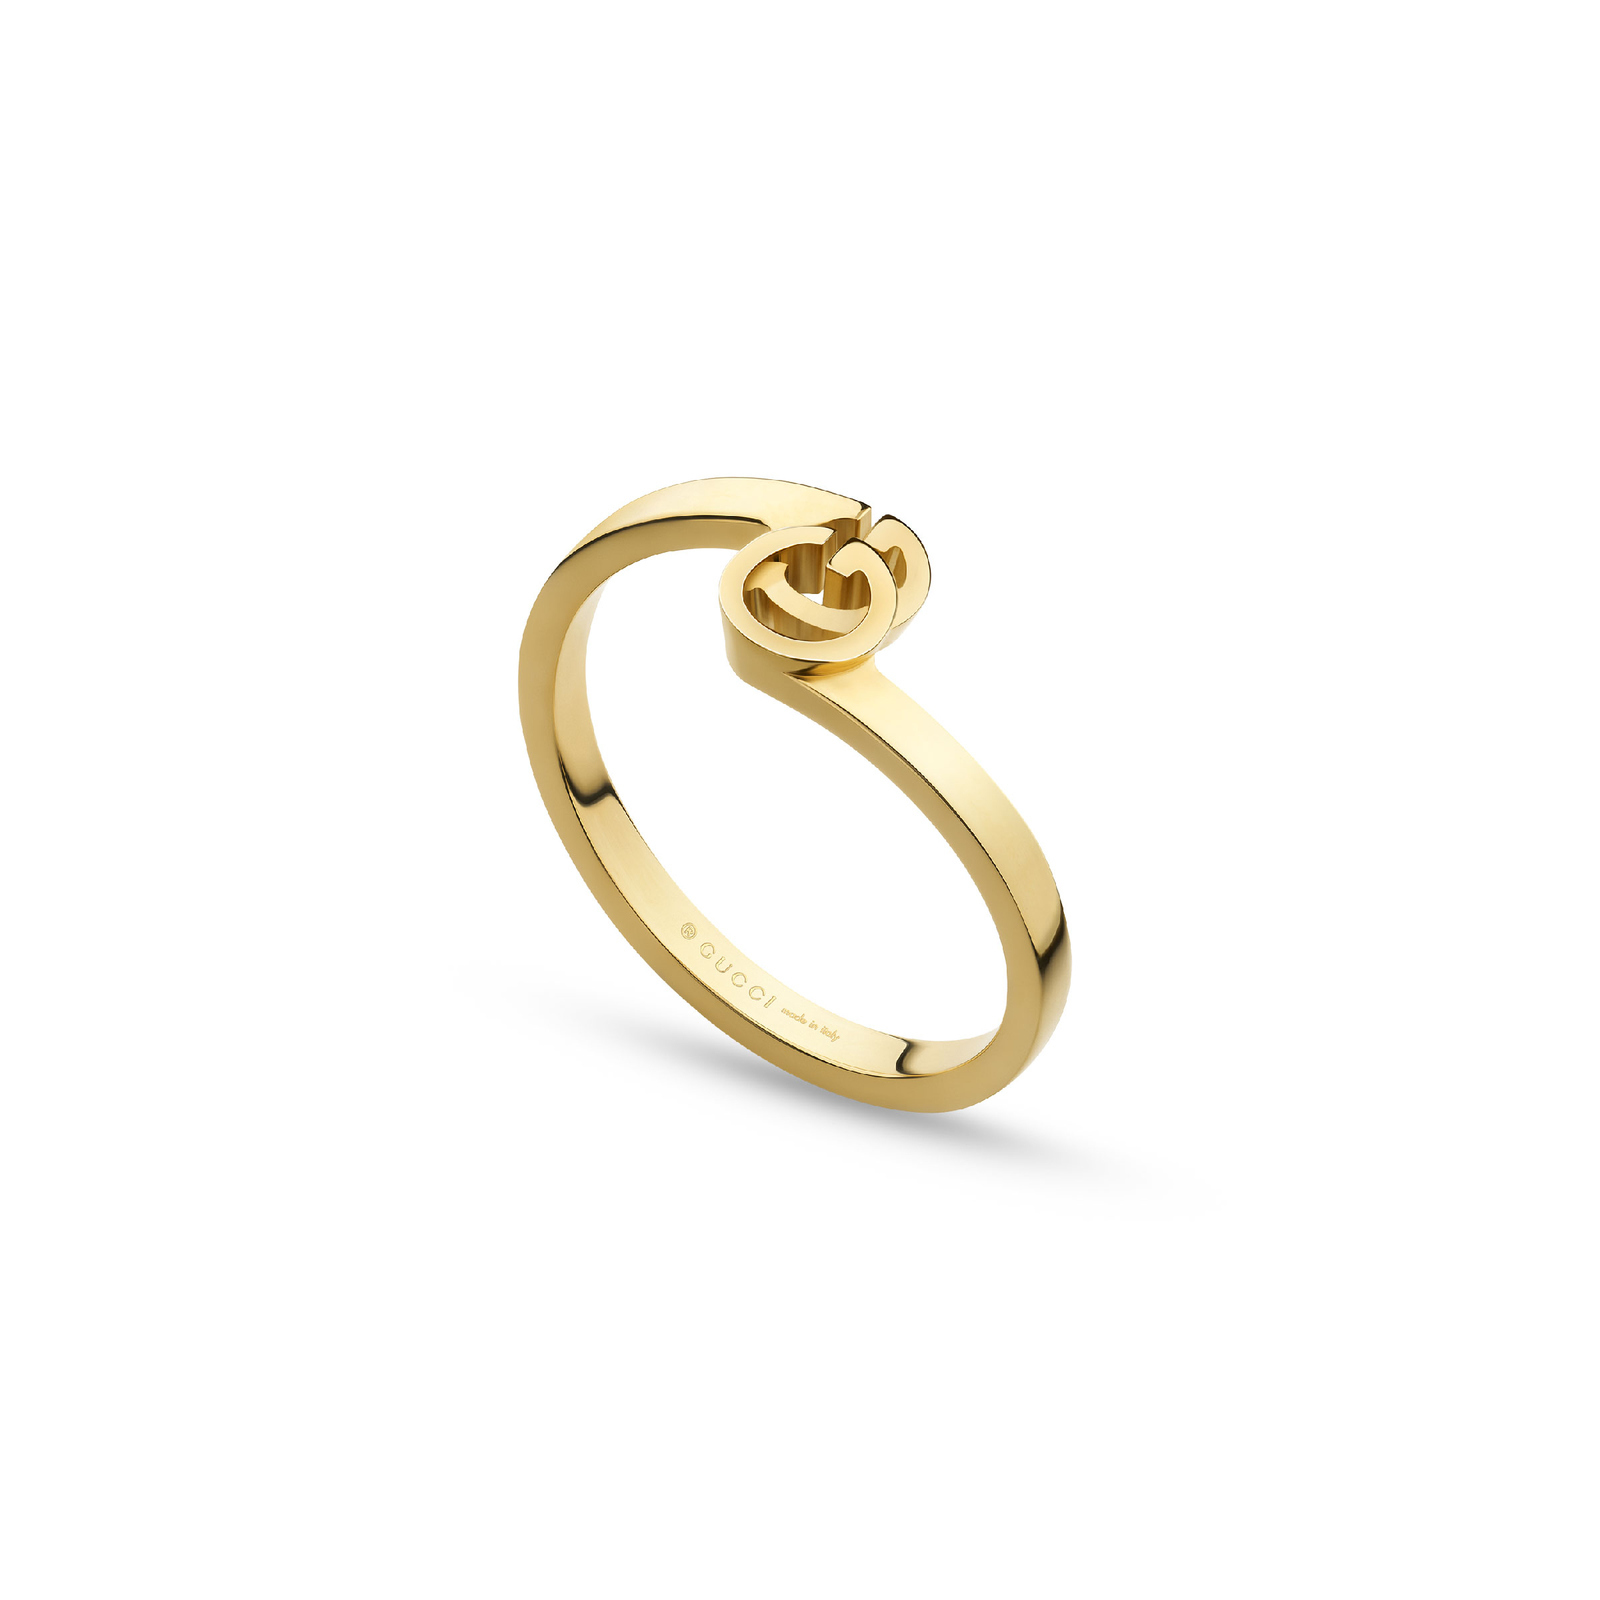 Gucci Running G Ring in 18ct Yellow Gold - Ring Size J thumbnail